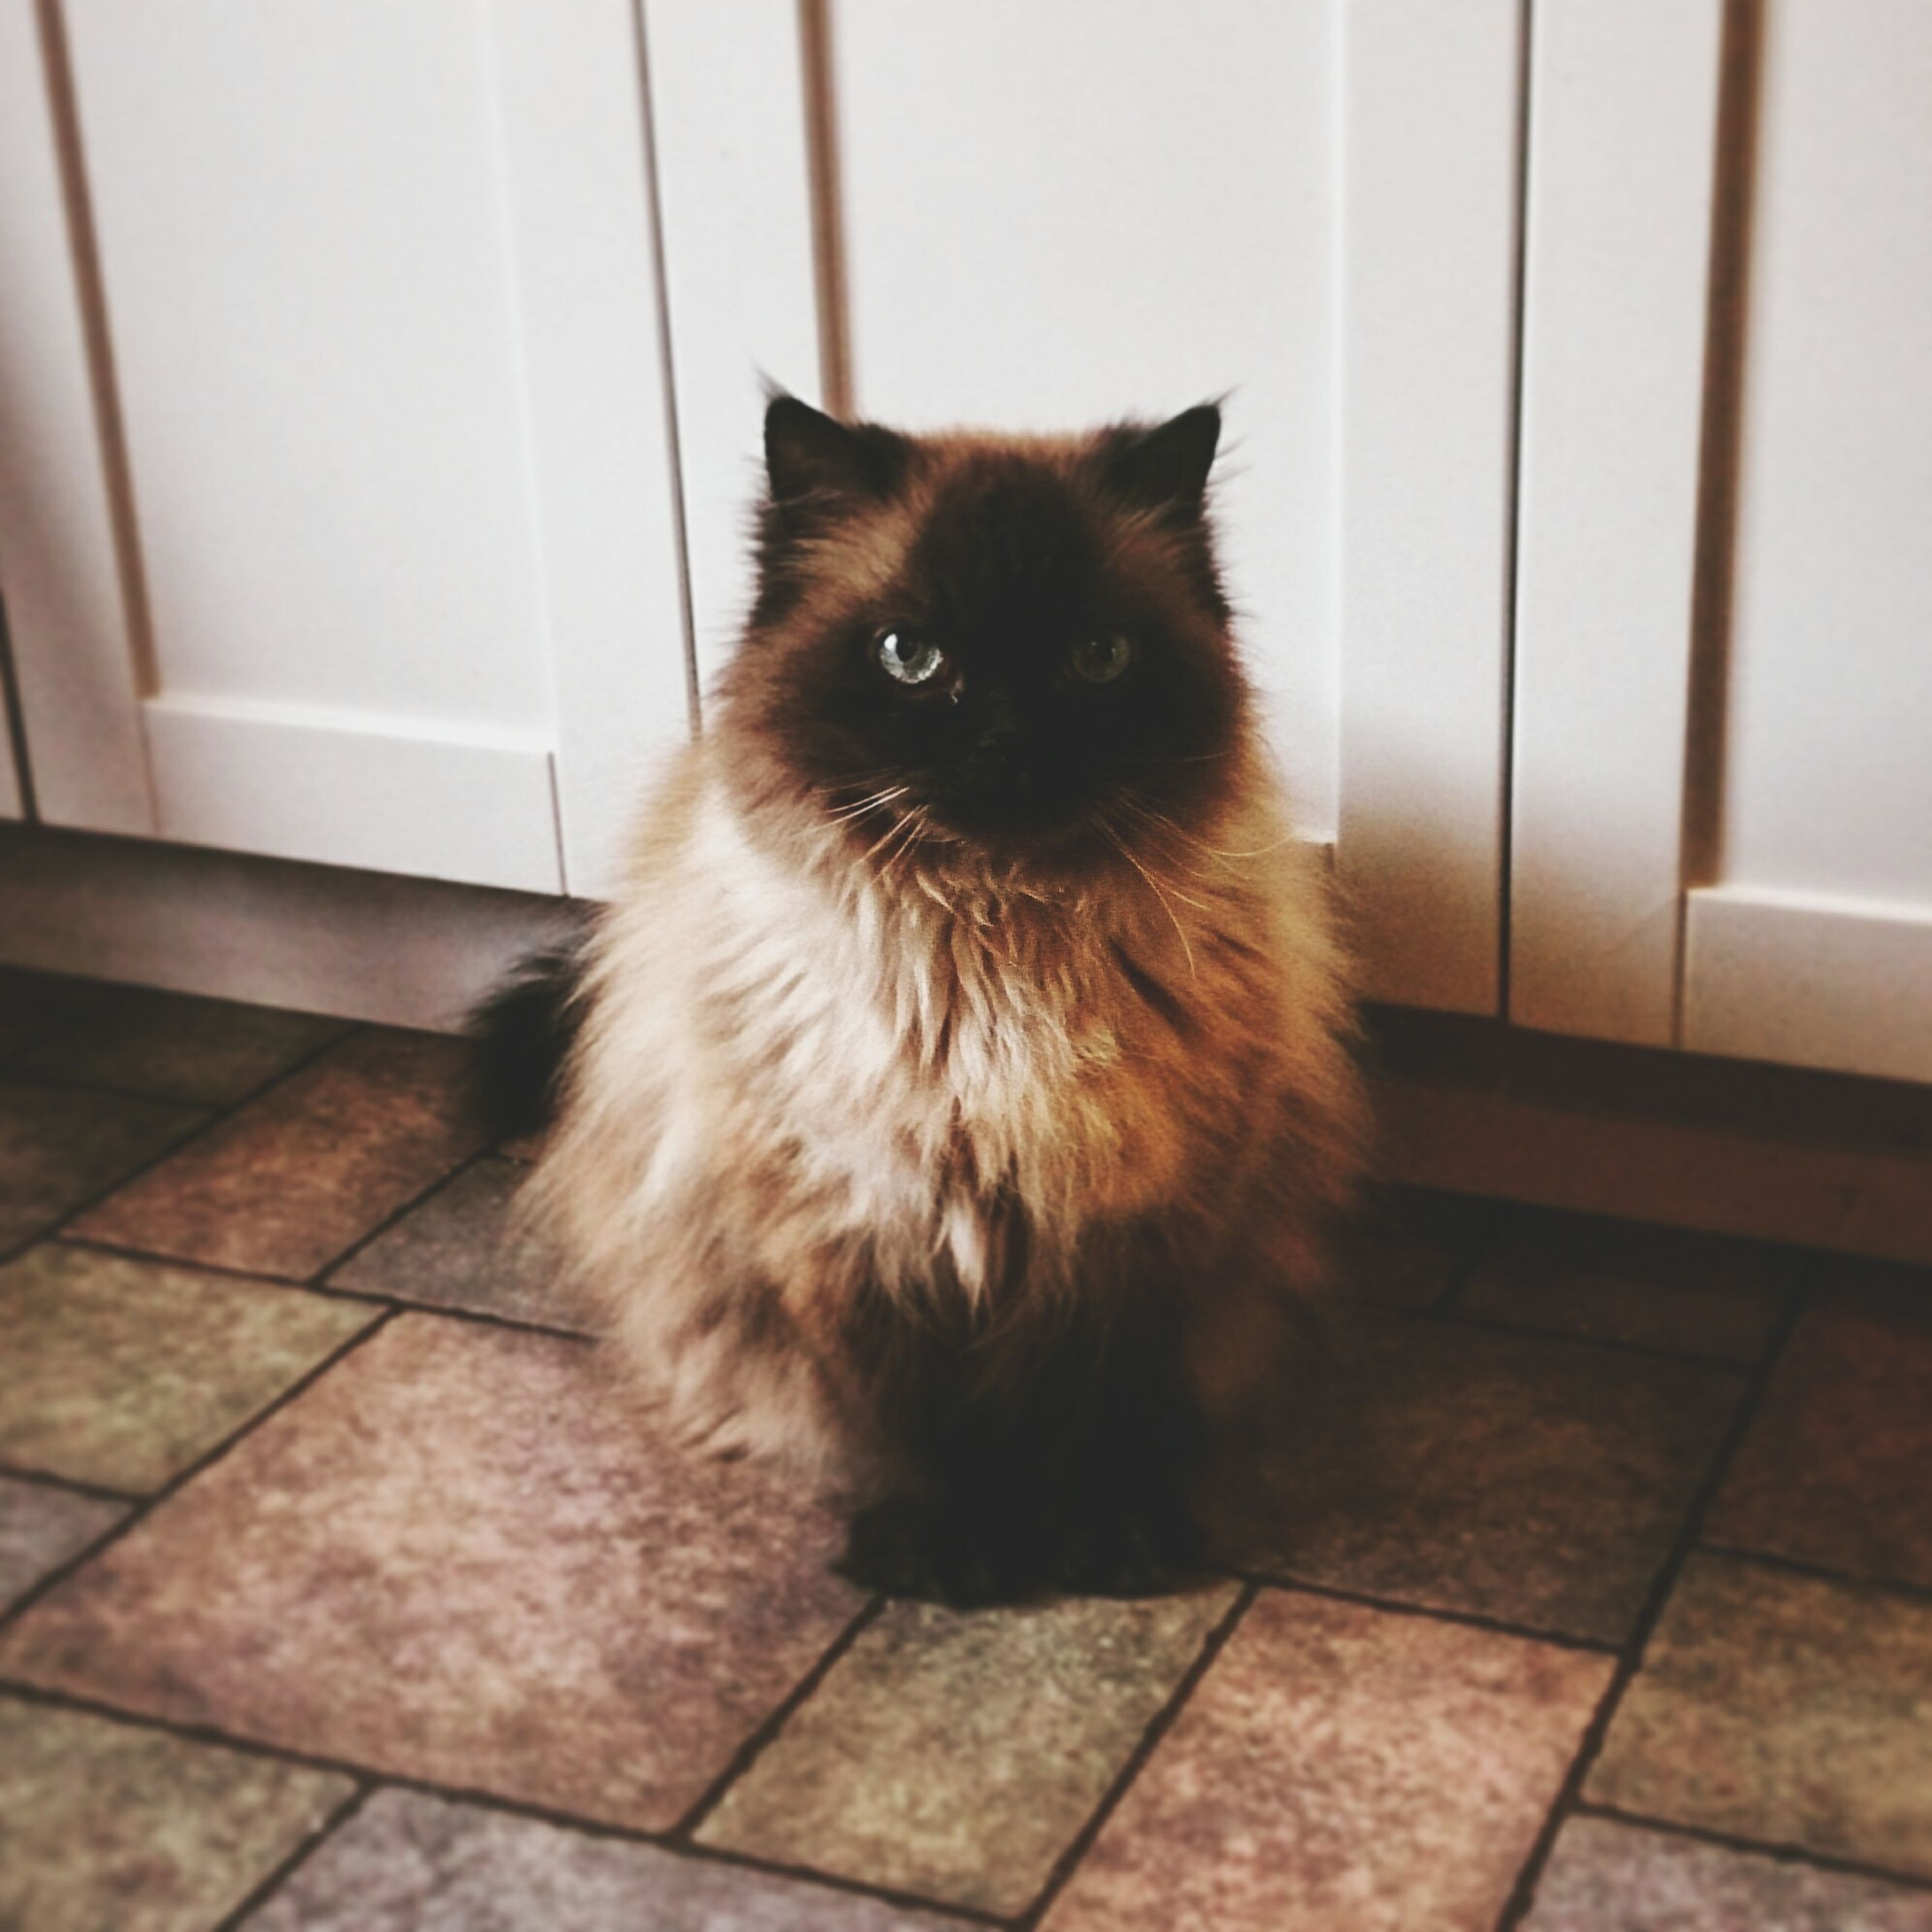 indoors, one animal, animal themes, pets, domestic cat, domestic animals, cat, mammal, sitting, feline, whisker, flooring, portrait, looking at camera, home interior, relaxation, tiled floor, full length, no people